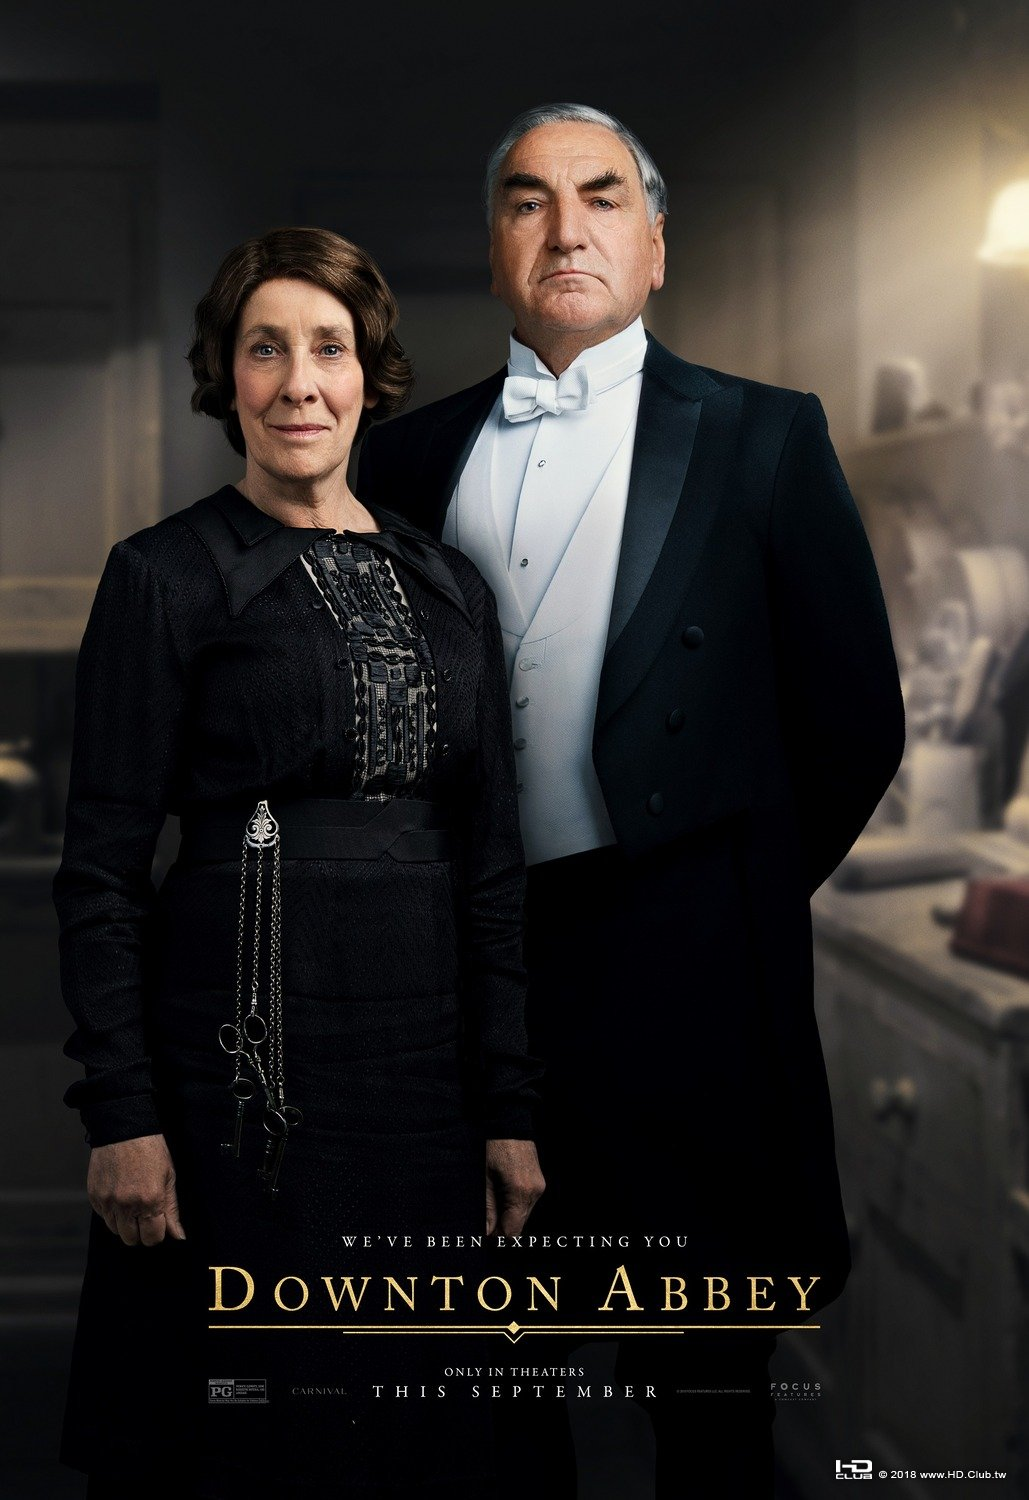 downton_abbey_ver17_xlg.jpg